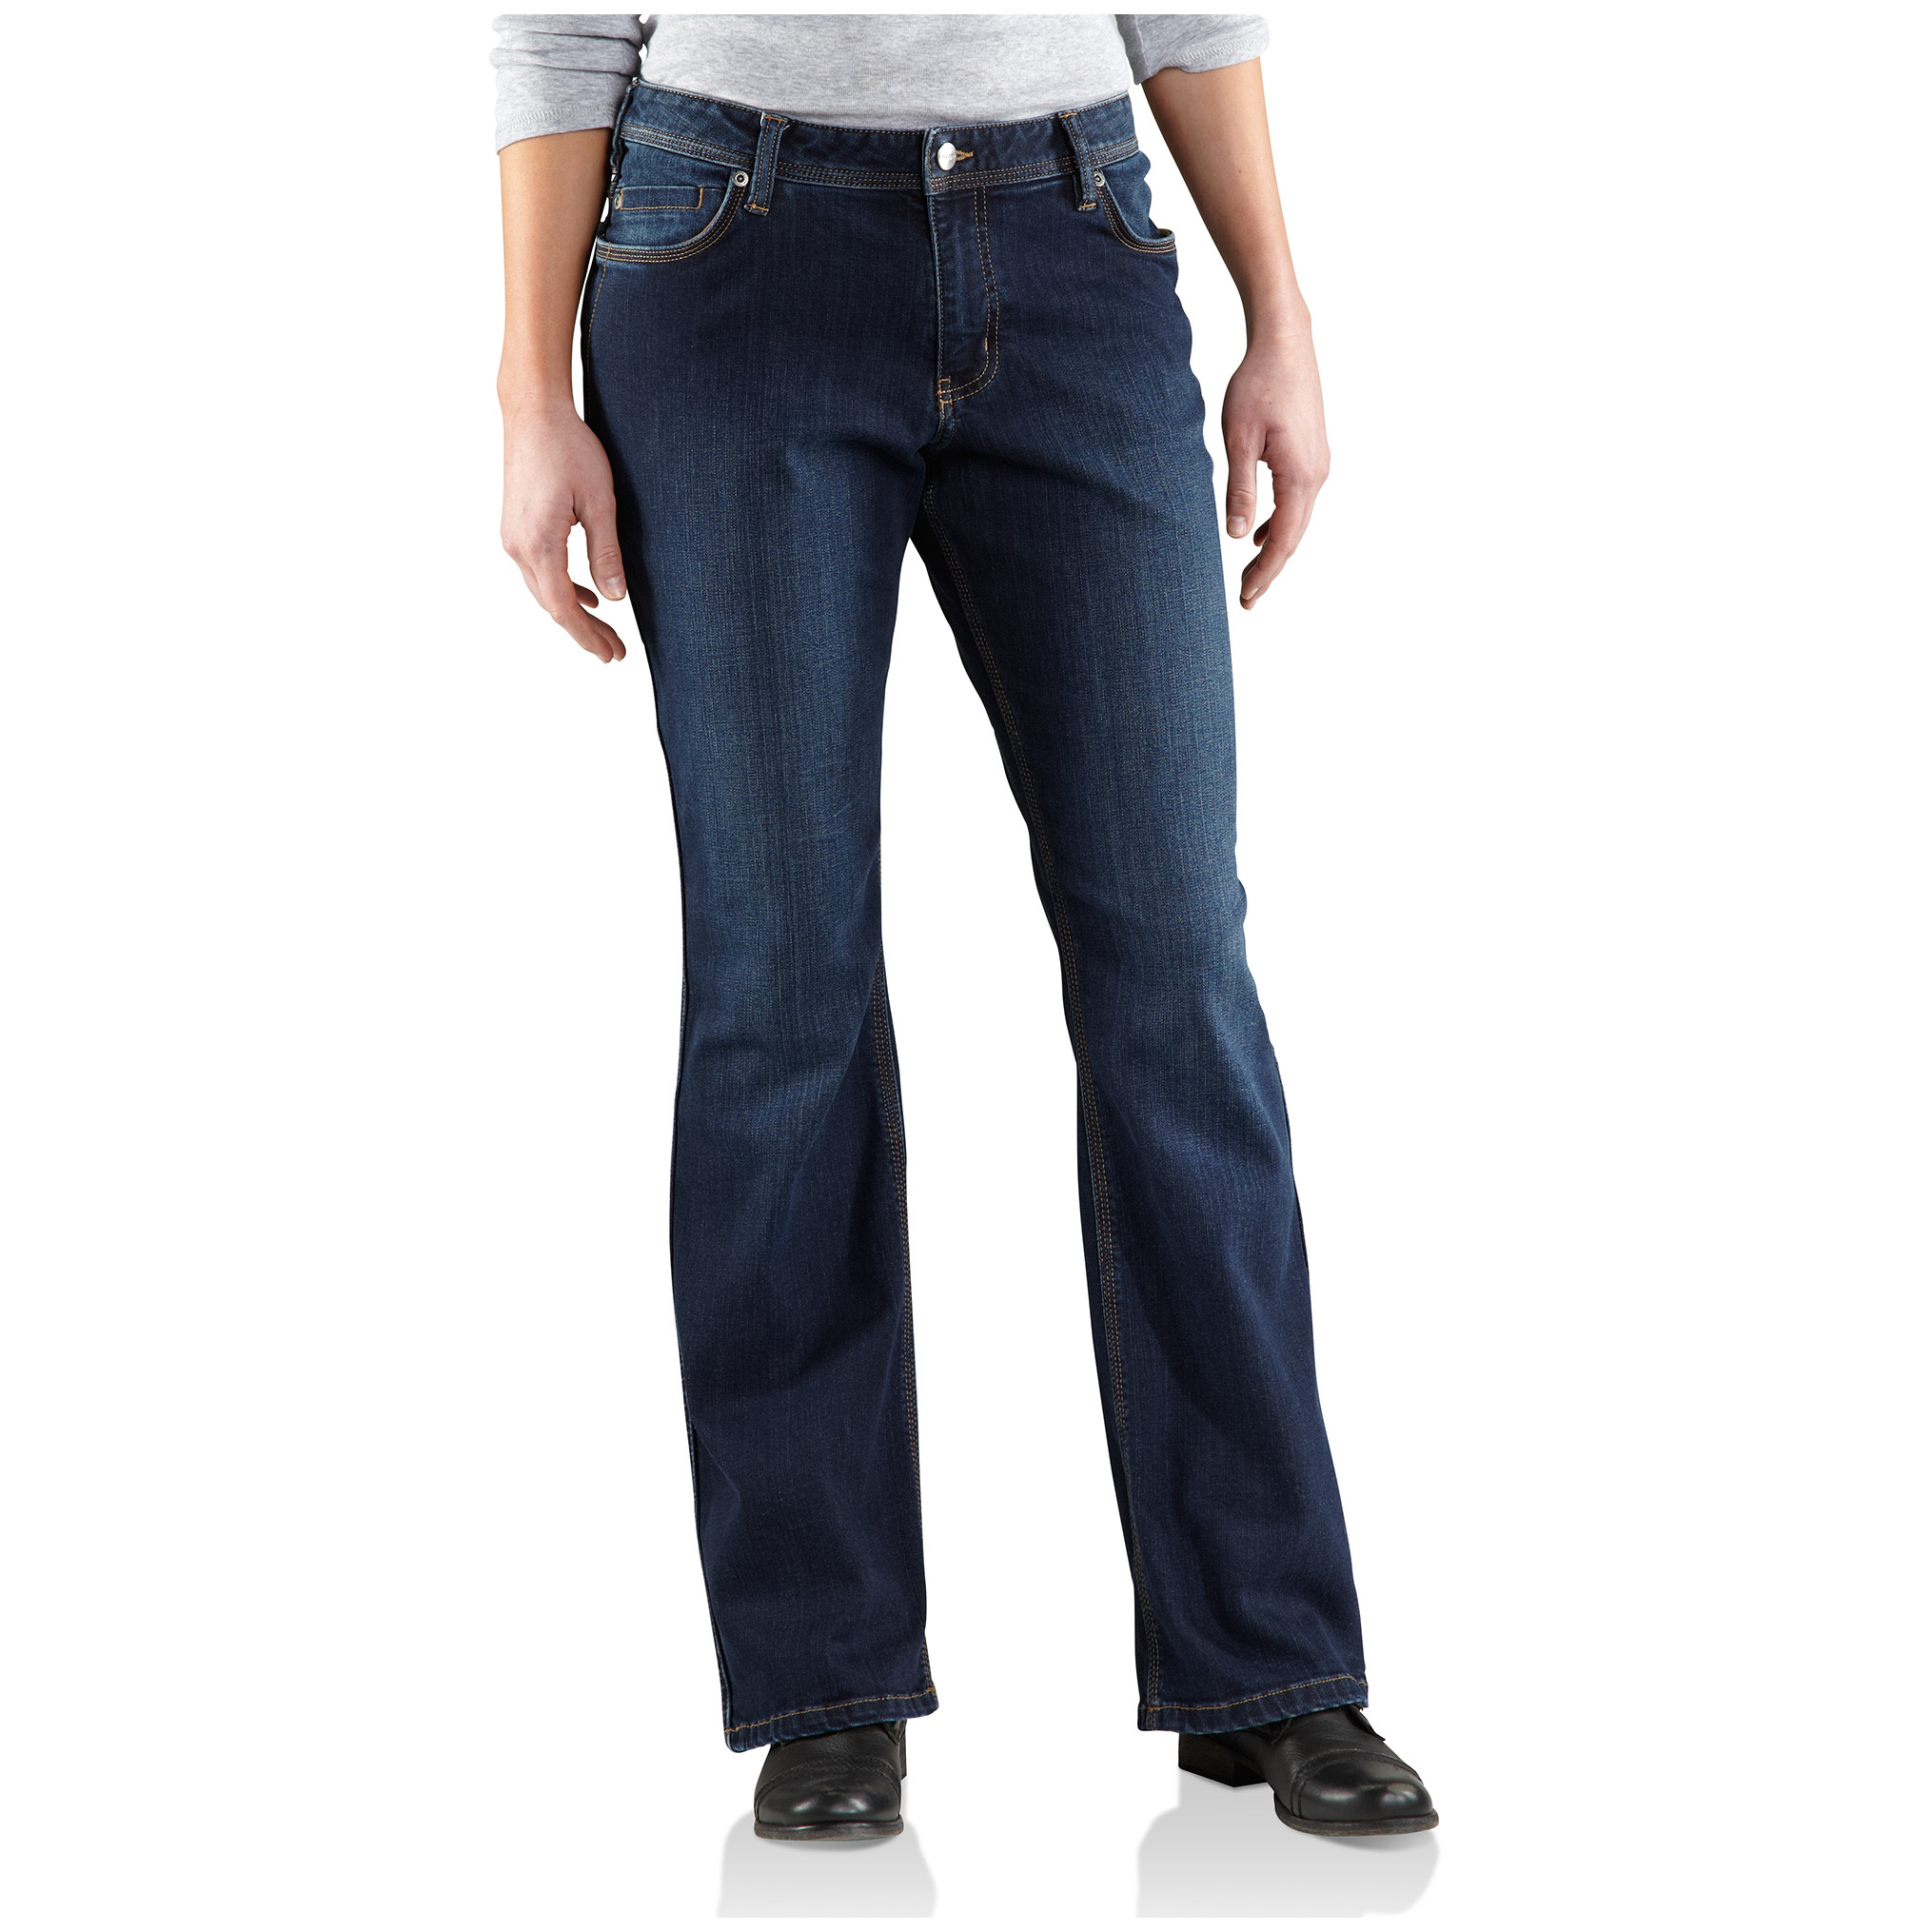 Women's Carhartt Relaxed Fit Jasper Denim Jeans. Fashionable, but with plenty of stretch! Cut for any job. Cut to fit you comfortably. The stretch-blend denim makes crouching, crawling, and climbing just that much easier. Details:10.5-oz. 77/21/2 cotton / polyester / spandex denim blend Rugged Flex technology offers plenty of flex for bending, etc. Original fit, mid-rise, sits just below the waist Relaxed fit through the hip and thighs Boot cut leg Classic 5-pocket design Triple-stitched inseams for added durability Contoured waistband prevents gapping in the back. Machine wash / dry. Imported. Order ONLINE Today! - $34.99